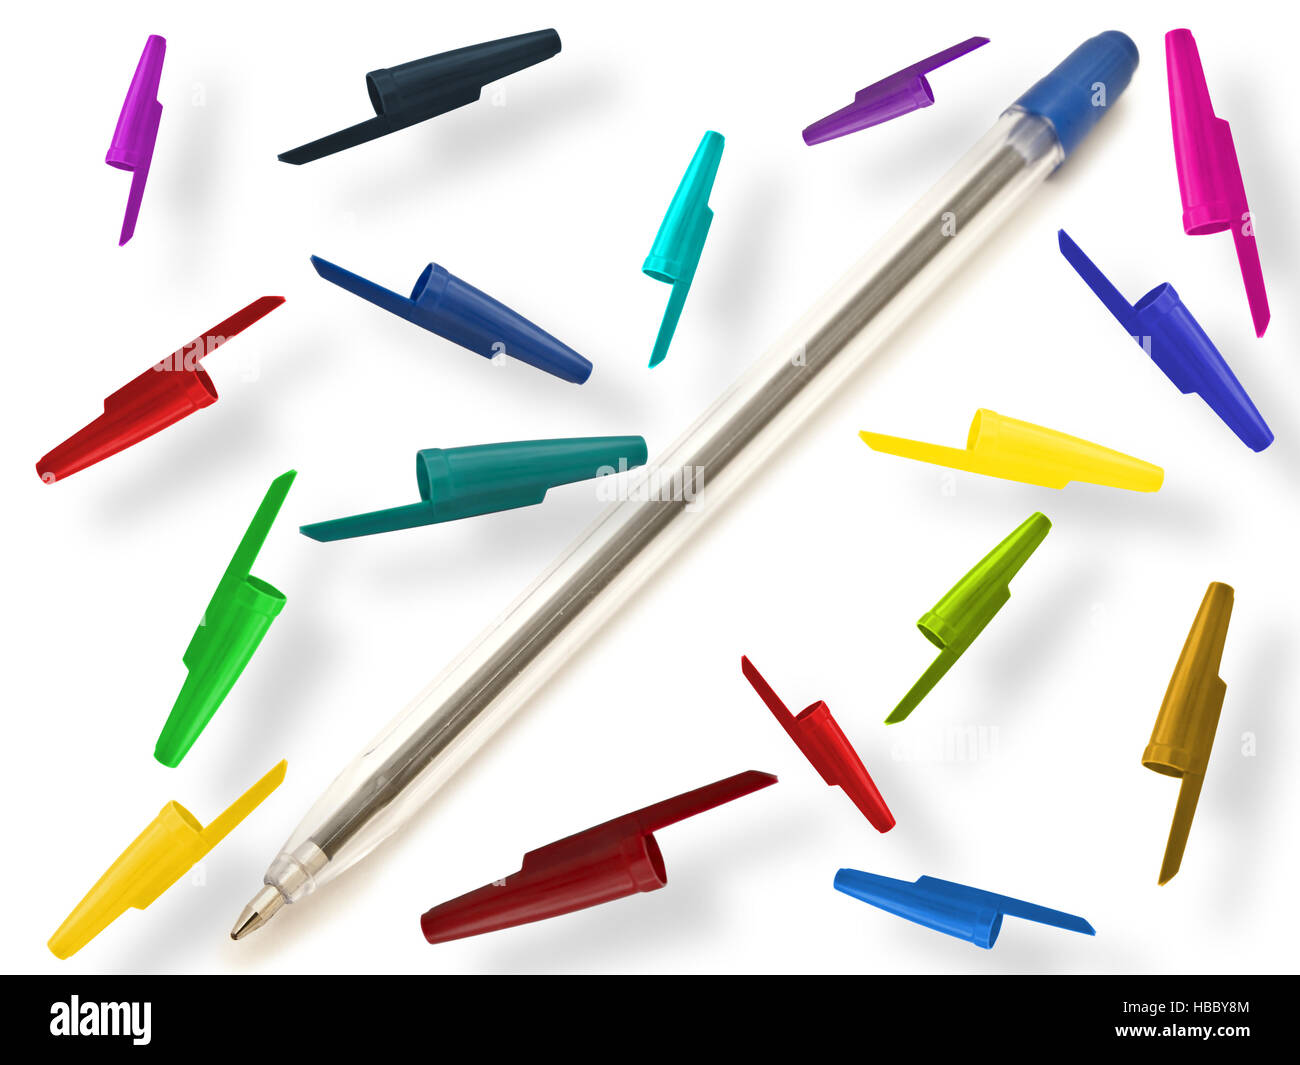 Pen With Multicolored Caps - Stock Image